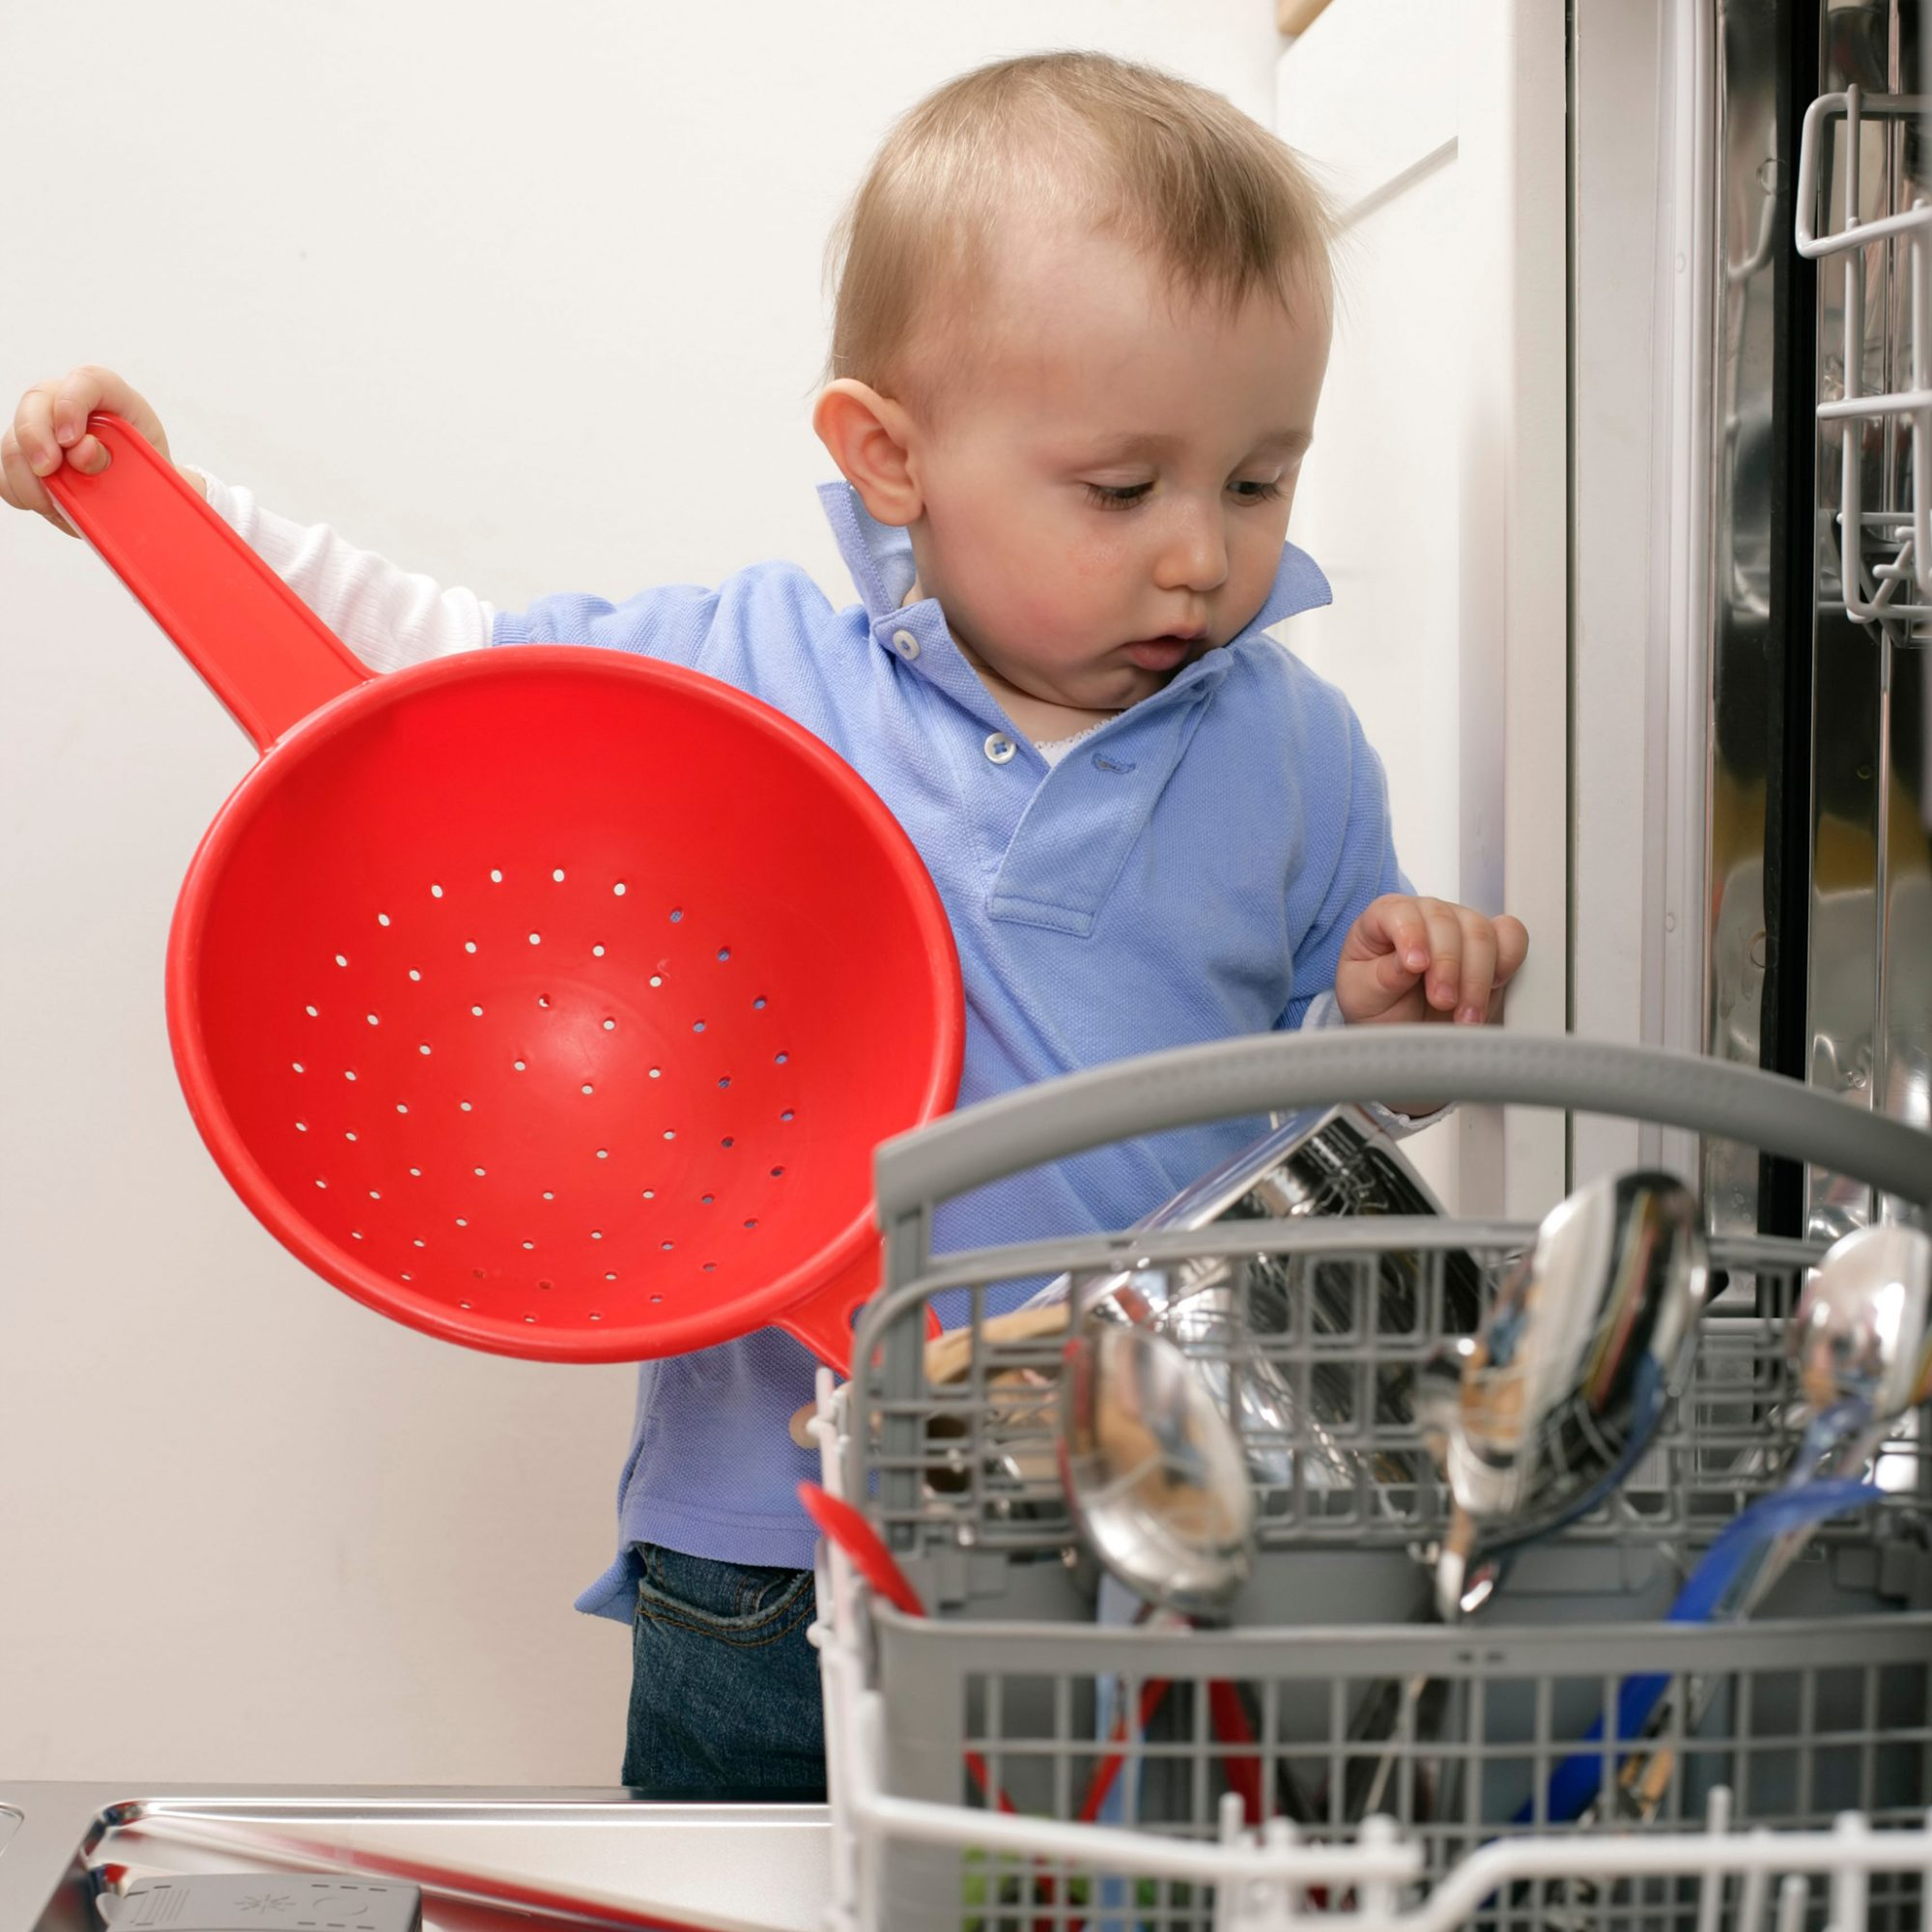 FWX DISHWASHERS MAKE US LESS HEALTHY